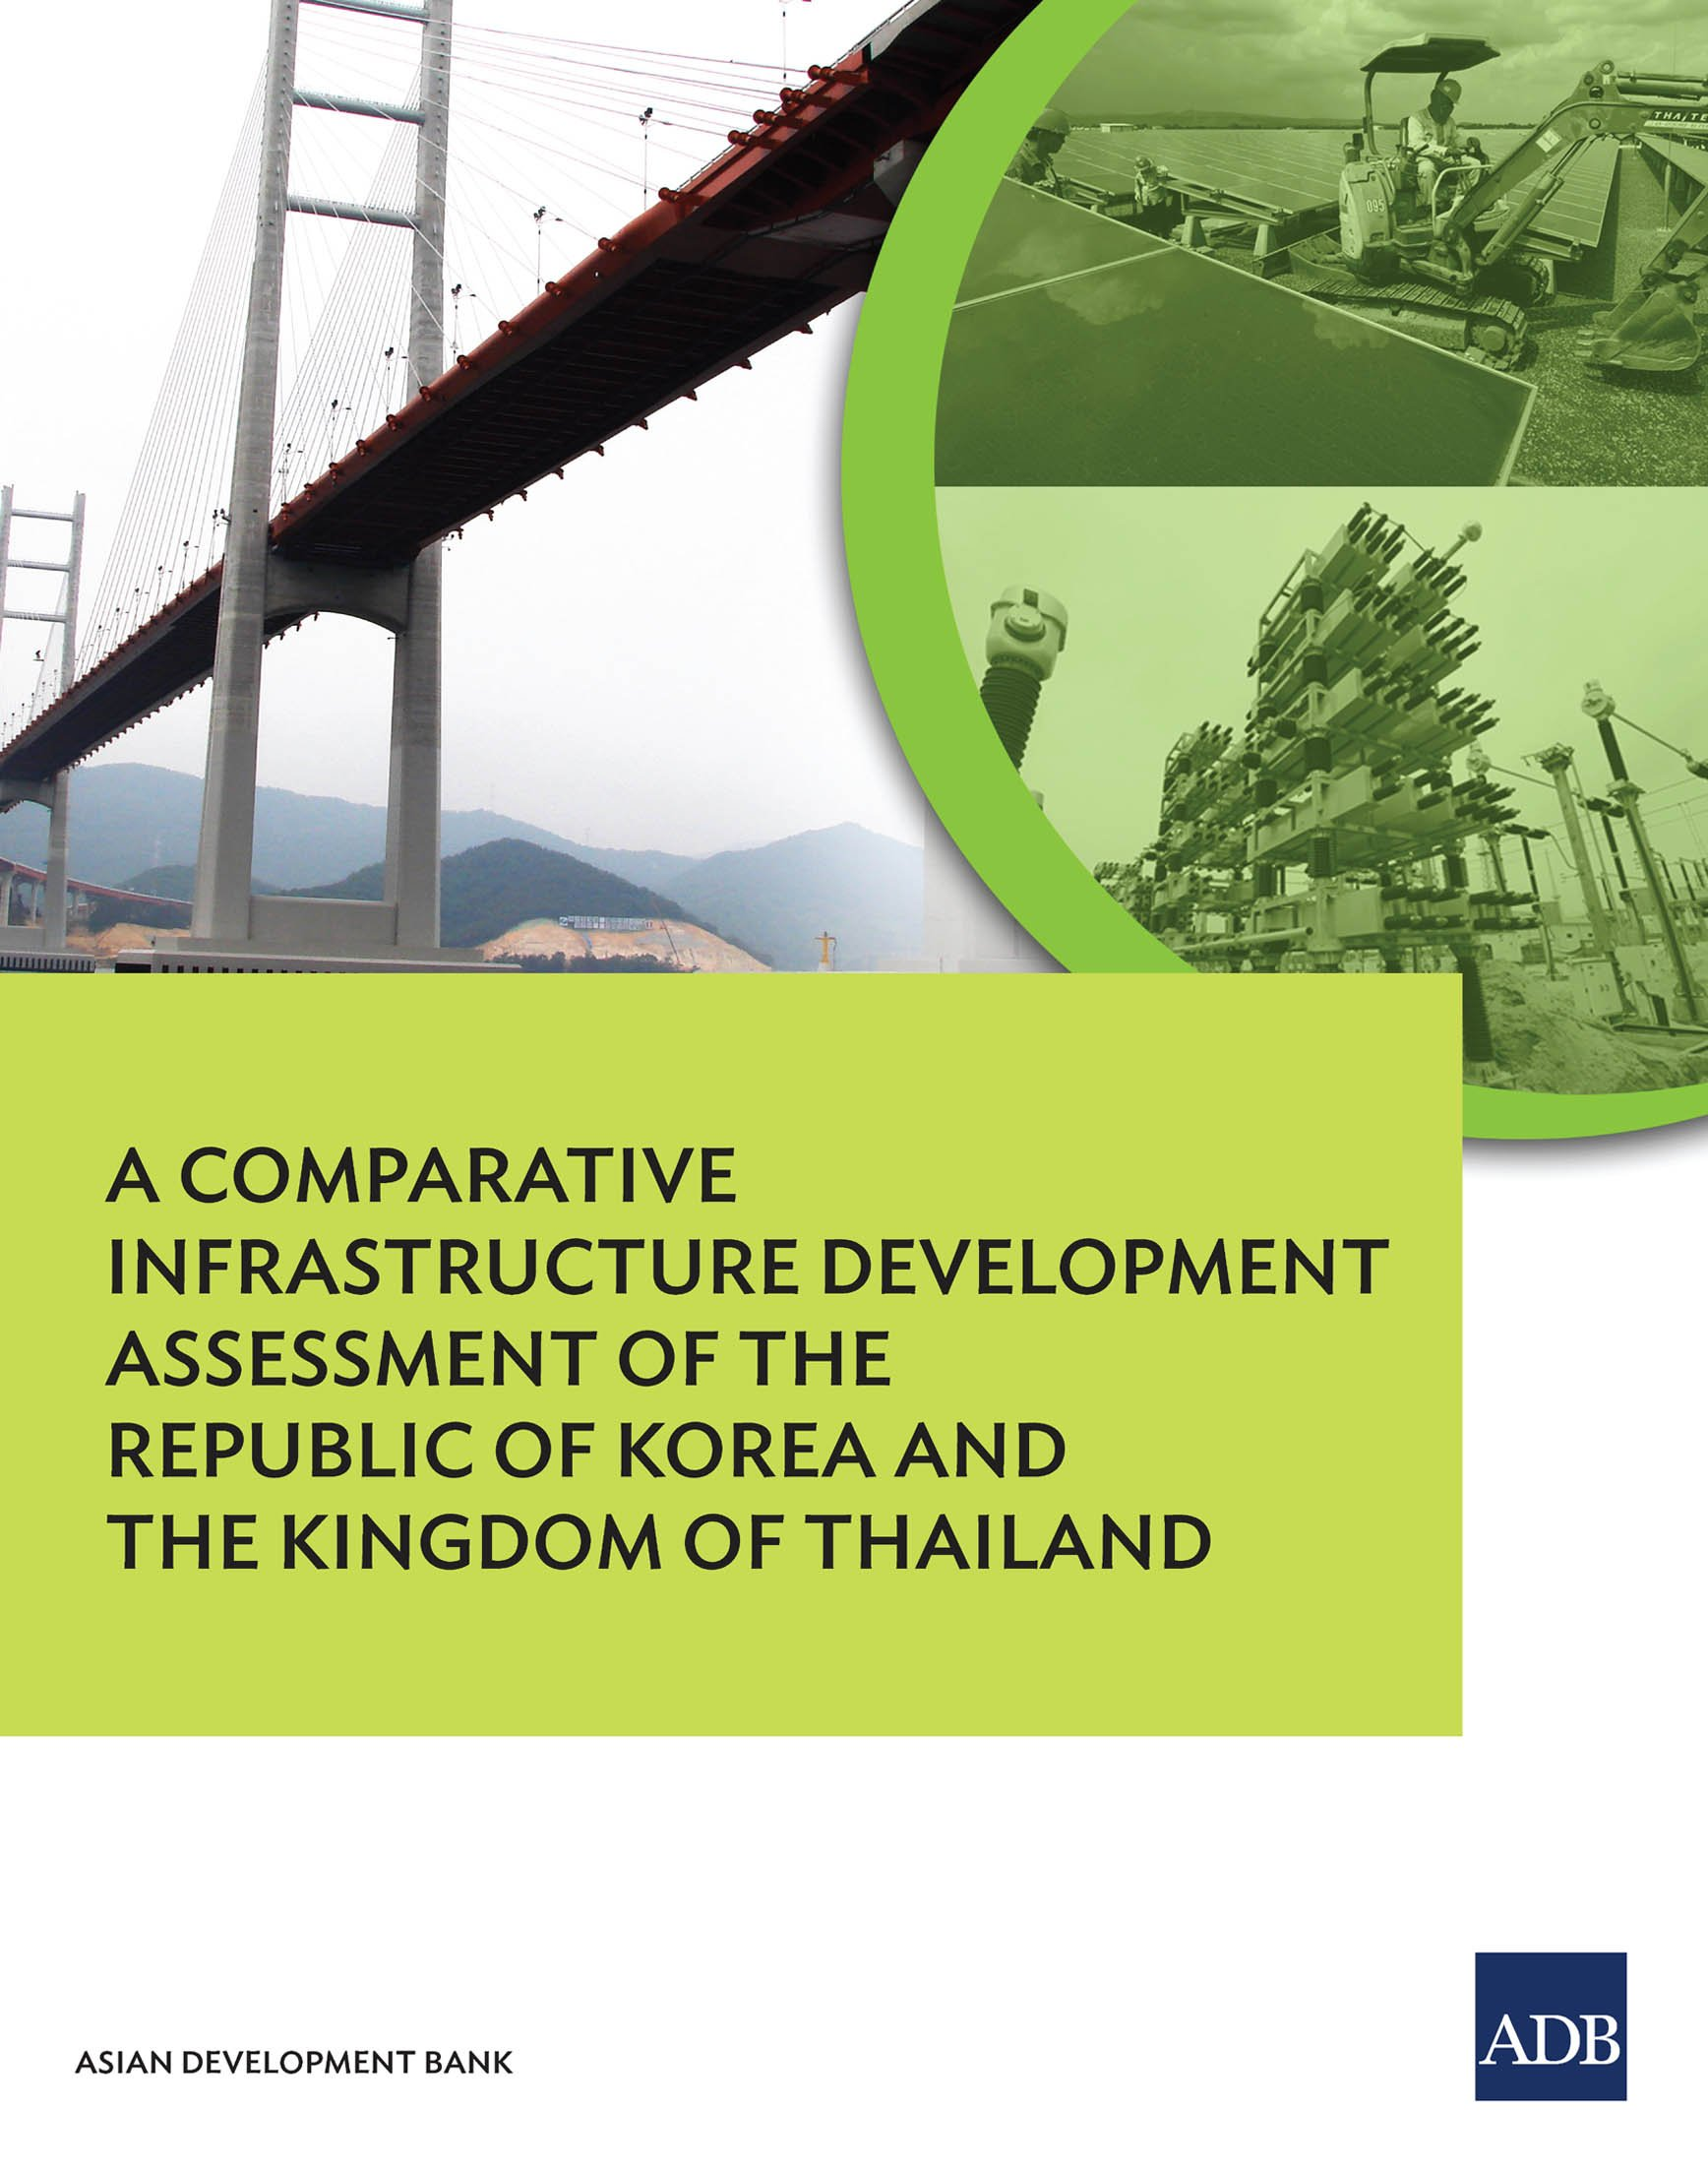 A Comparative Infrastructure Development Assessment of the Kingdom of Thailand and the Republic of Korea